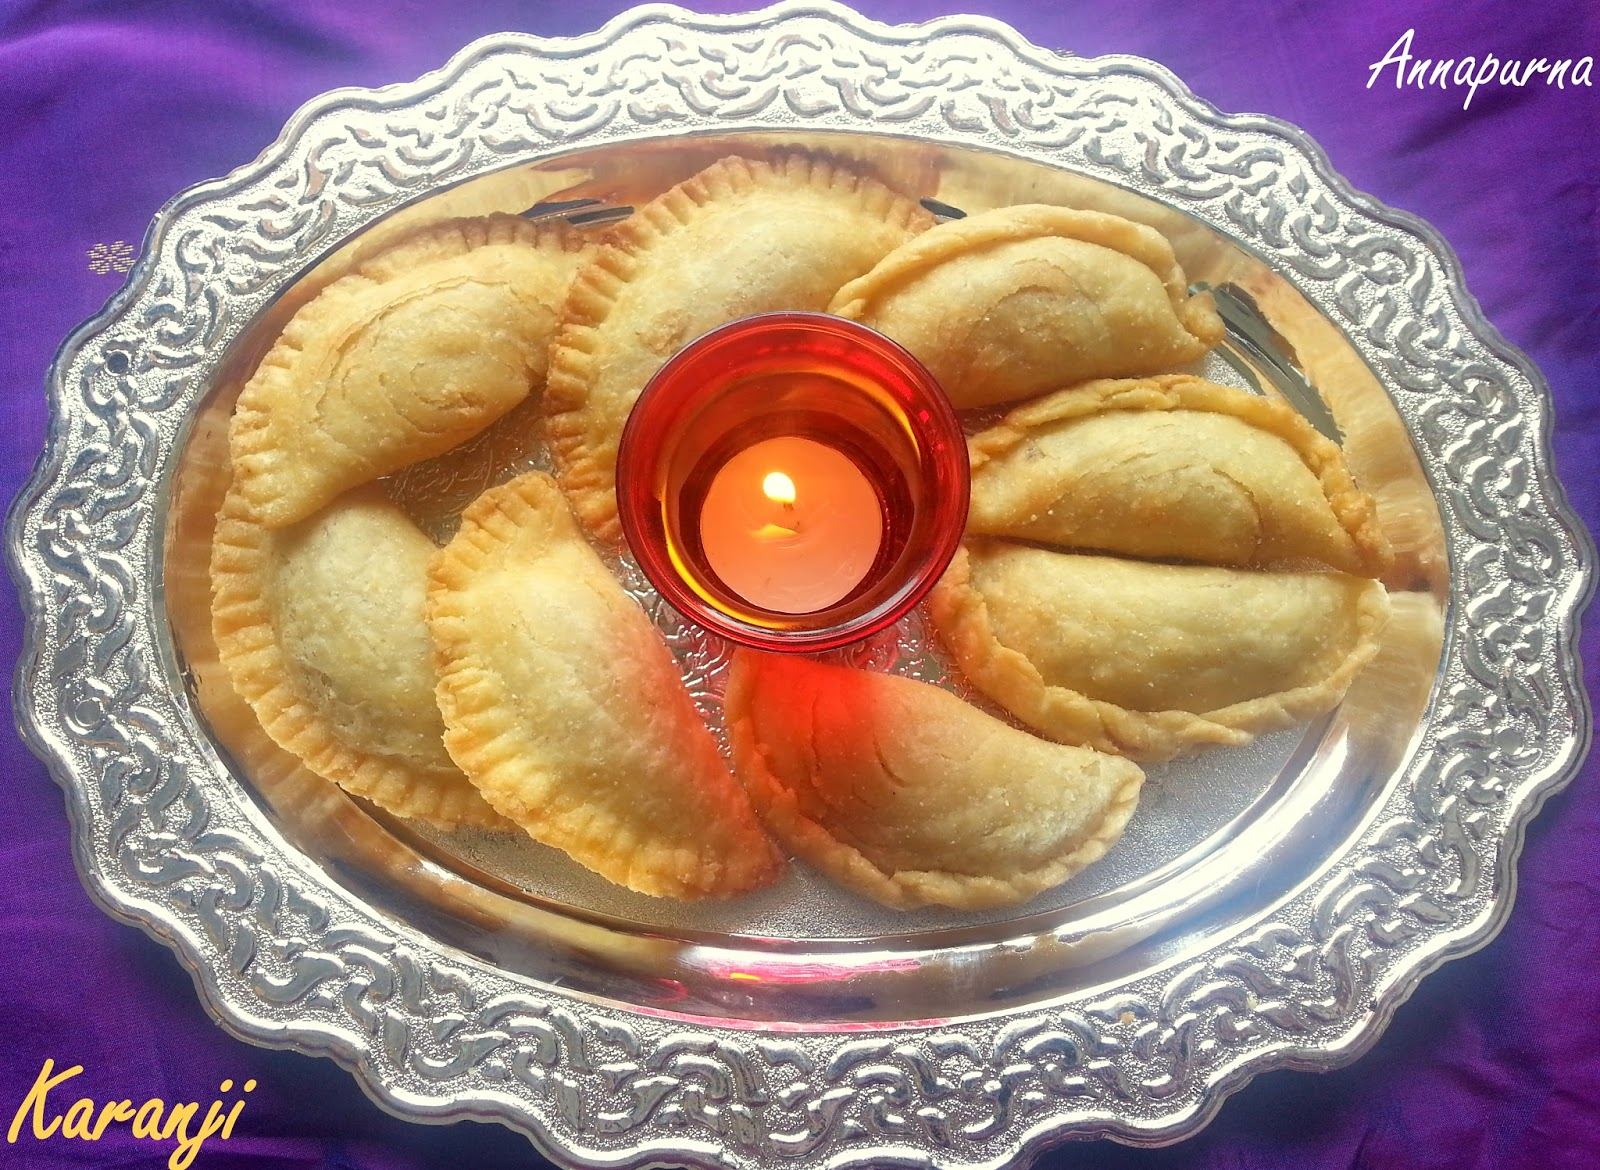 Annapurna pudachi karanji layered gujiya traditional maharashtrian fried sweet dumpling made on special occasions like diwali and ganesh chaturthi it is some what similar to north indian dish gujiya forumfinder Choice Image